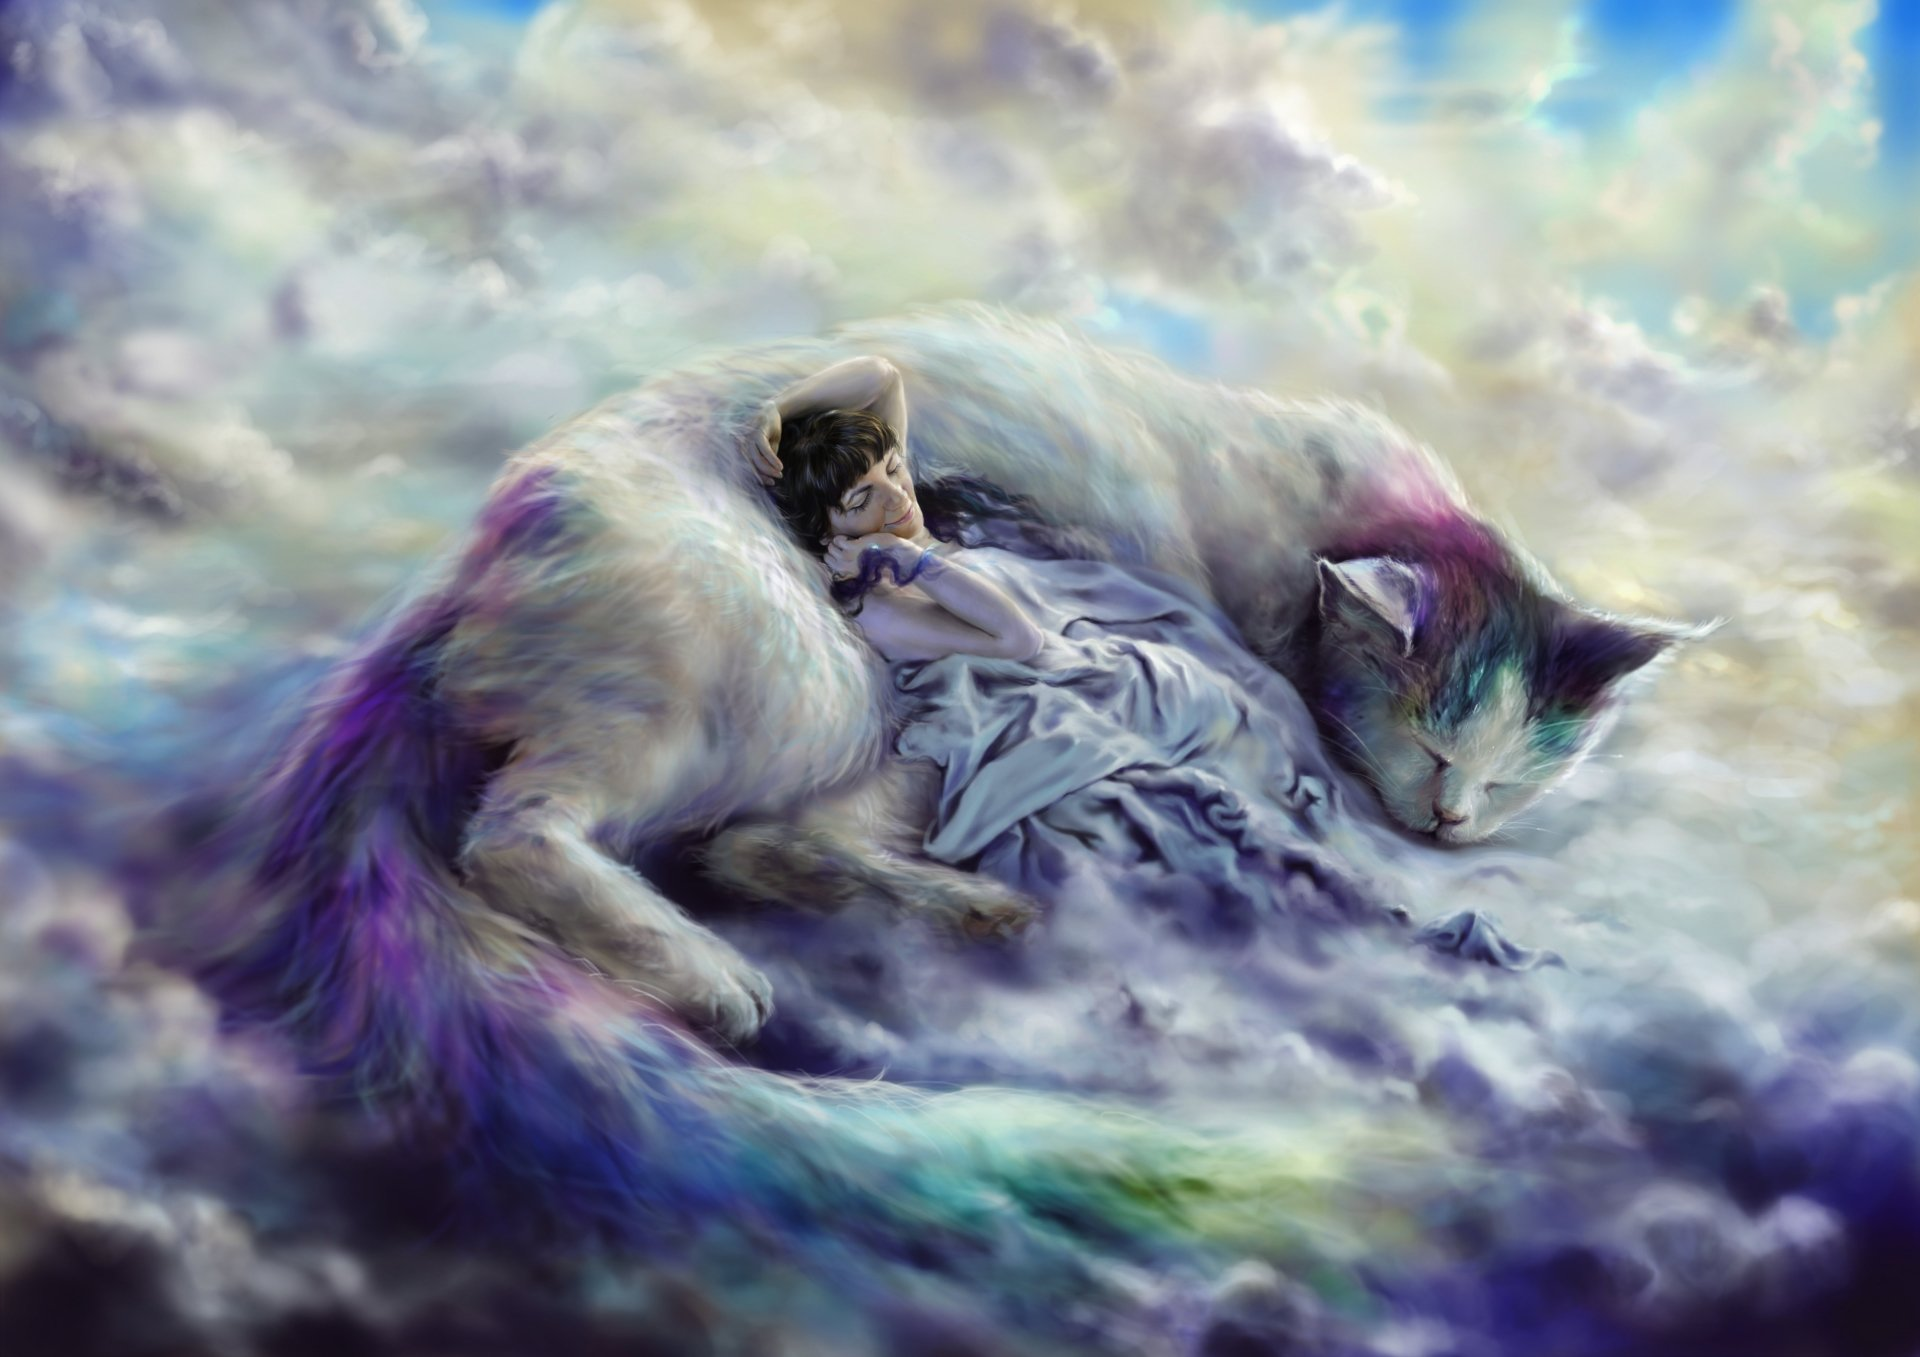 Fantasy - Cat  Fantasy Giant Woman Sleeping Sky Cloud Blanket Purple Wallpaper